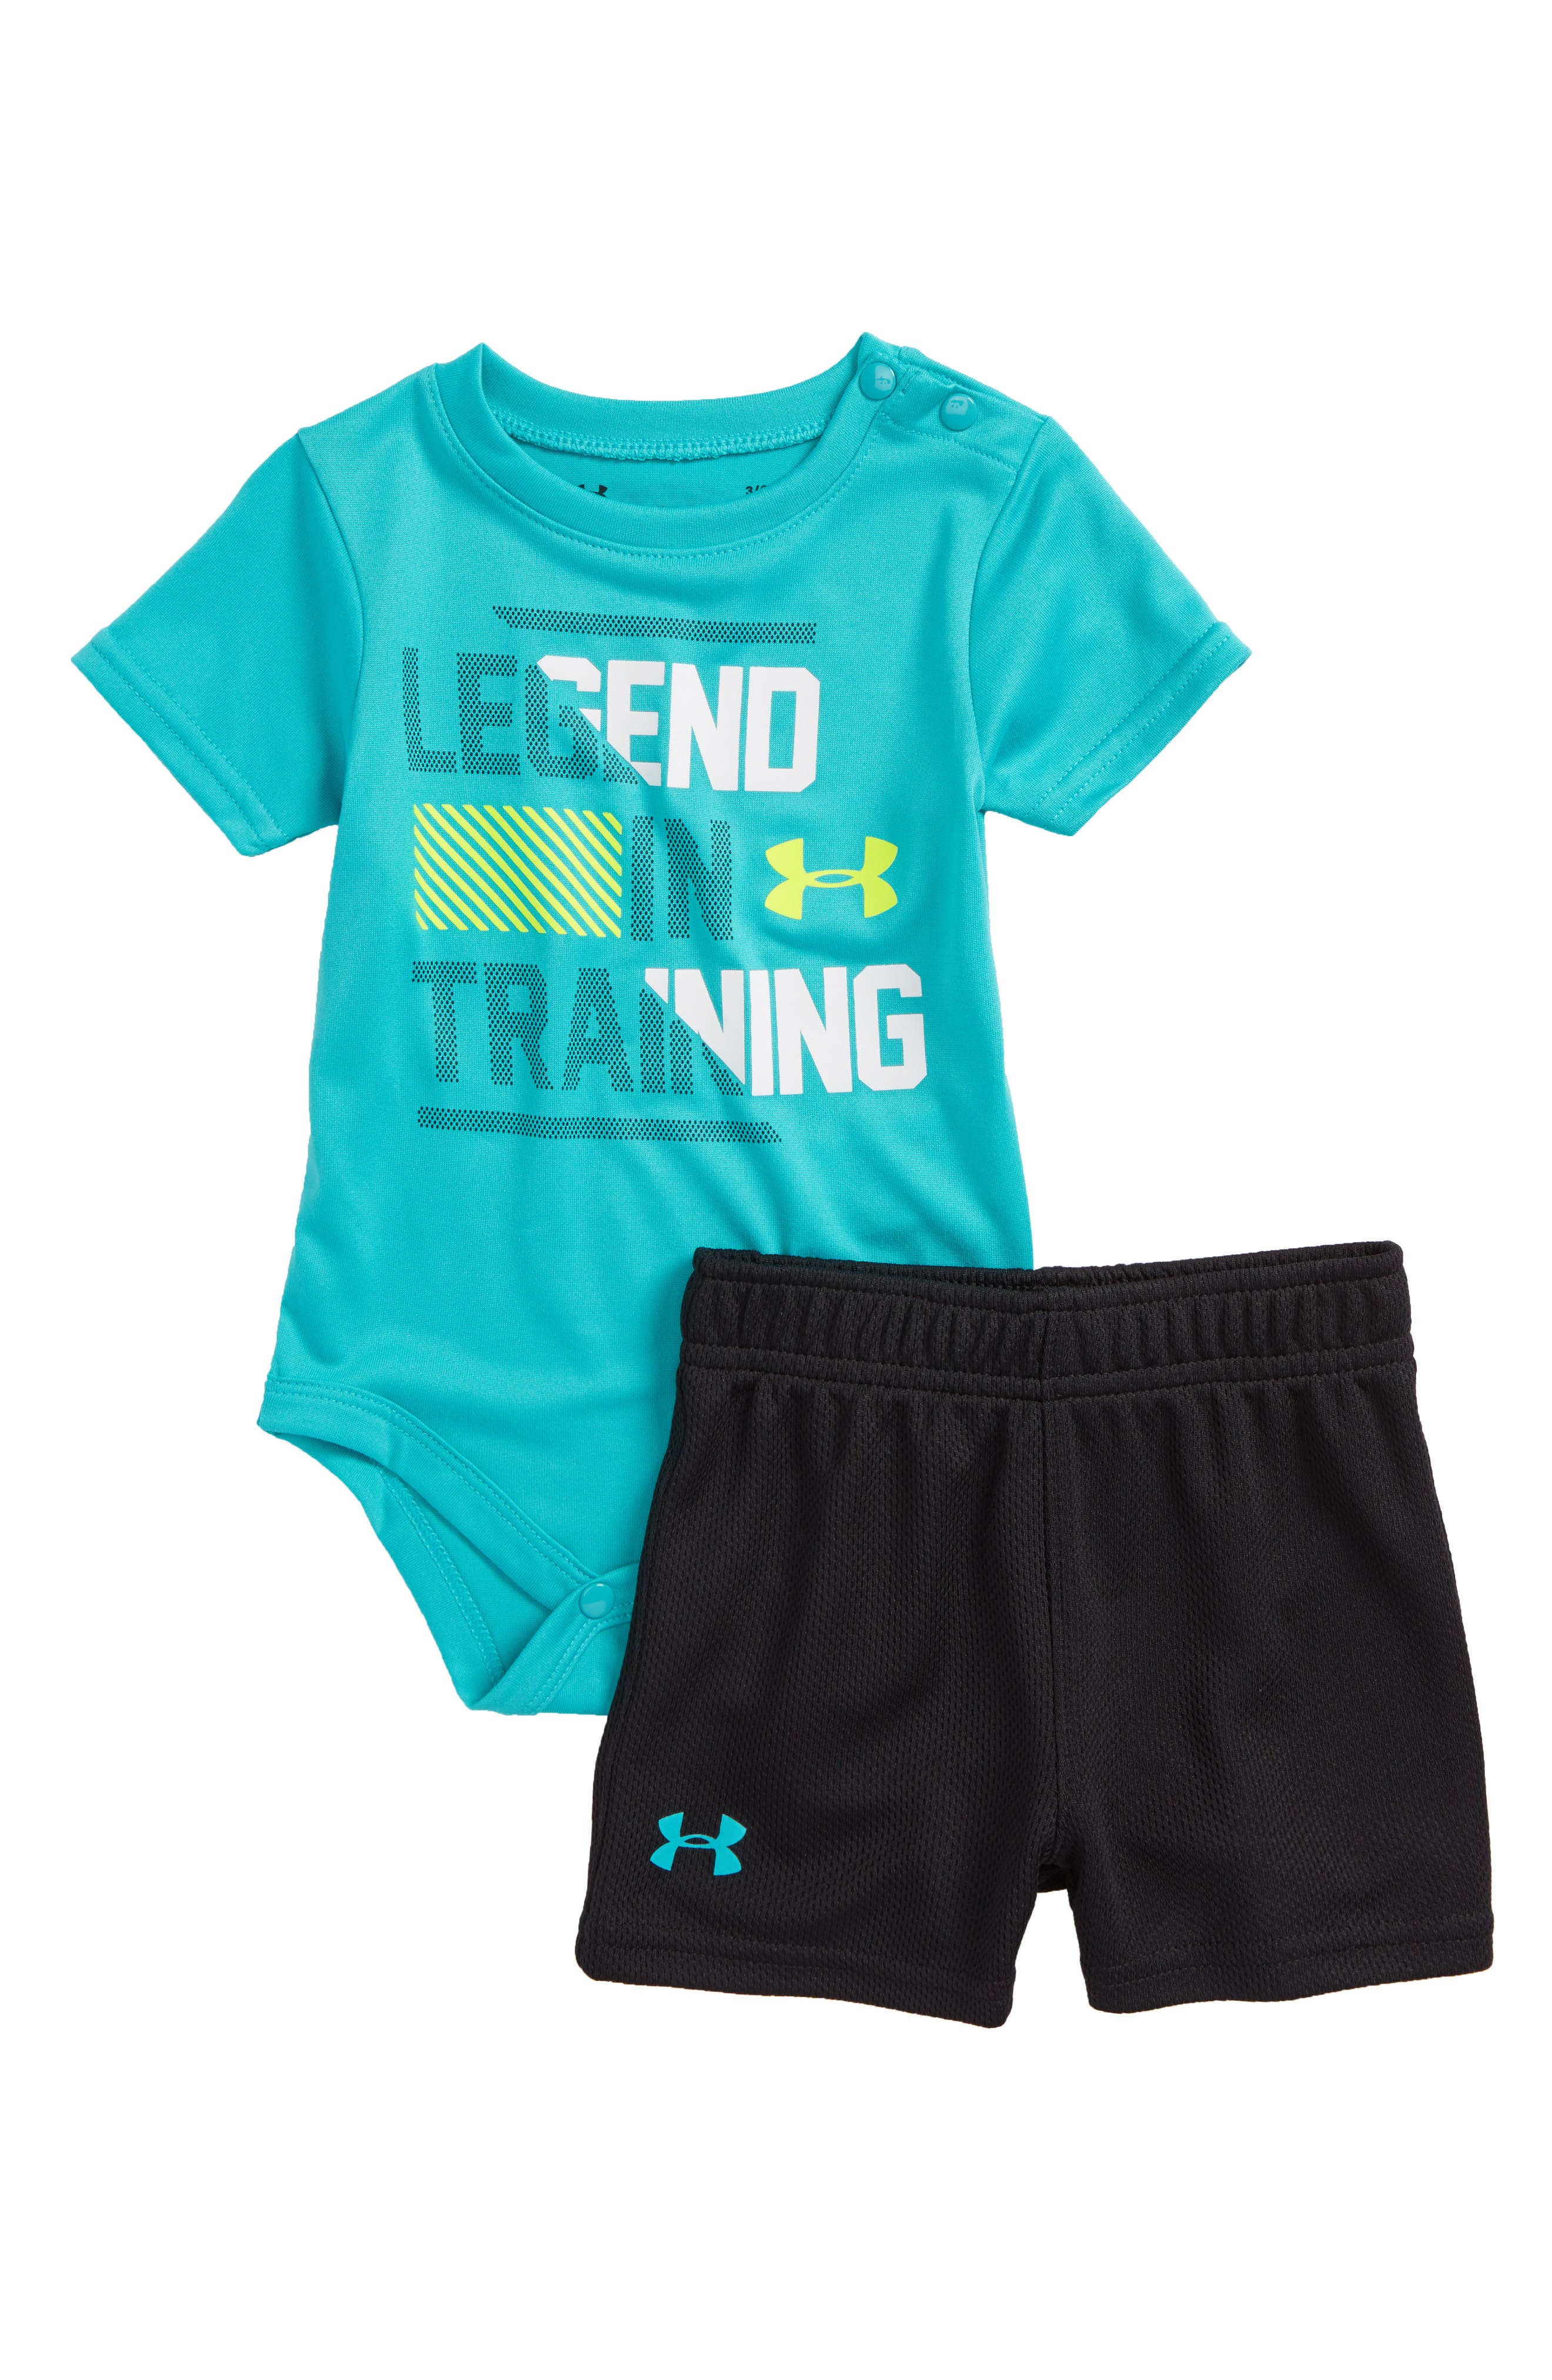 Under Armour Legend in Training T-Shirt & Shorts Set (Baby Boys)